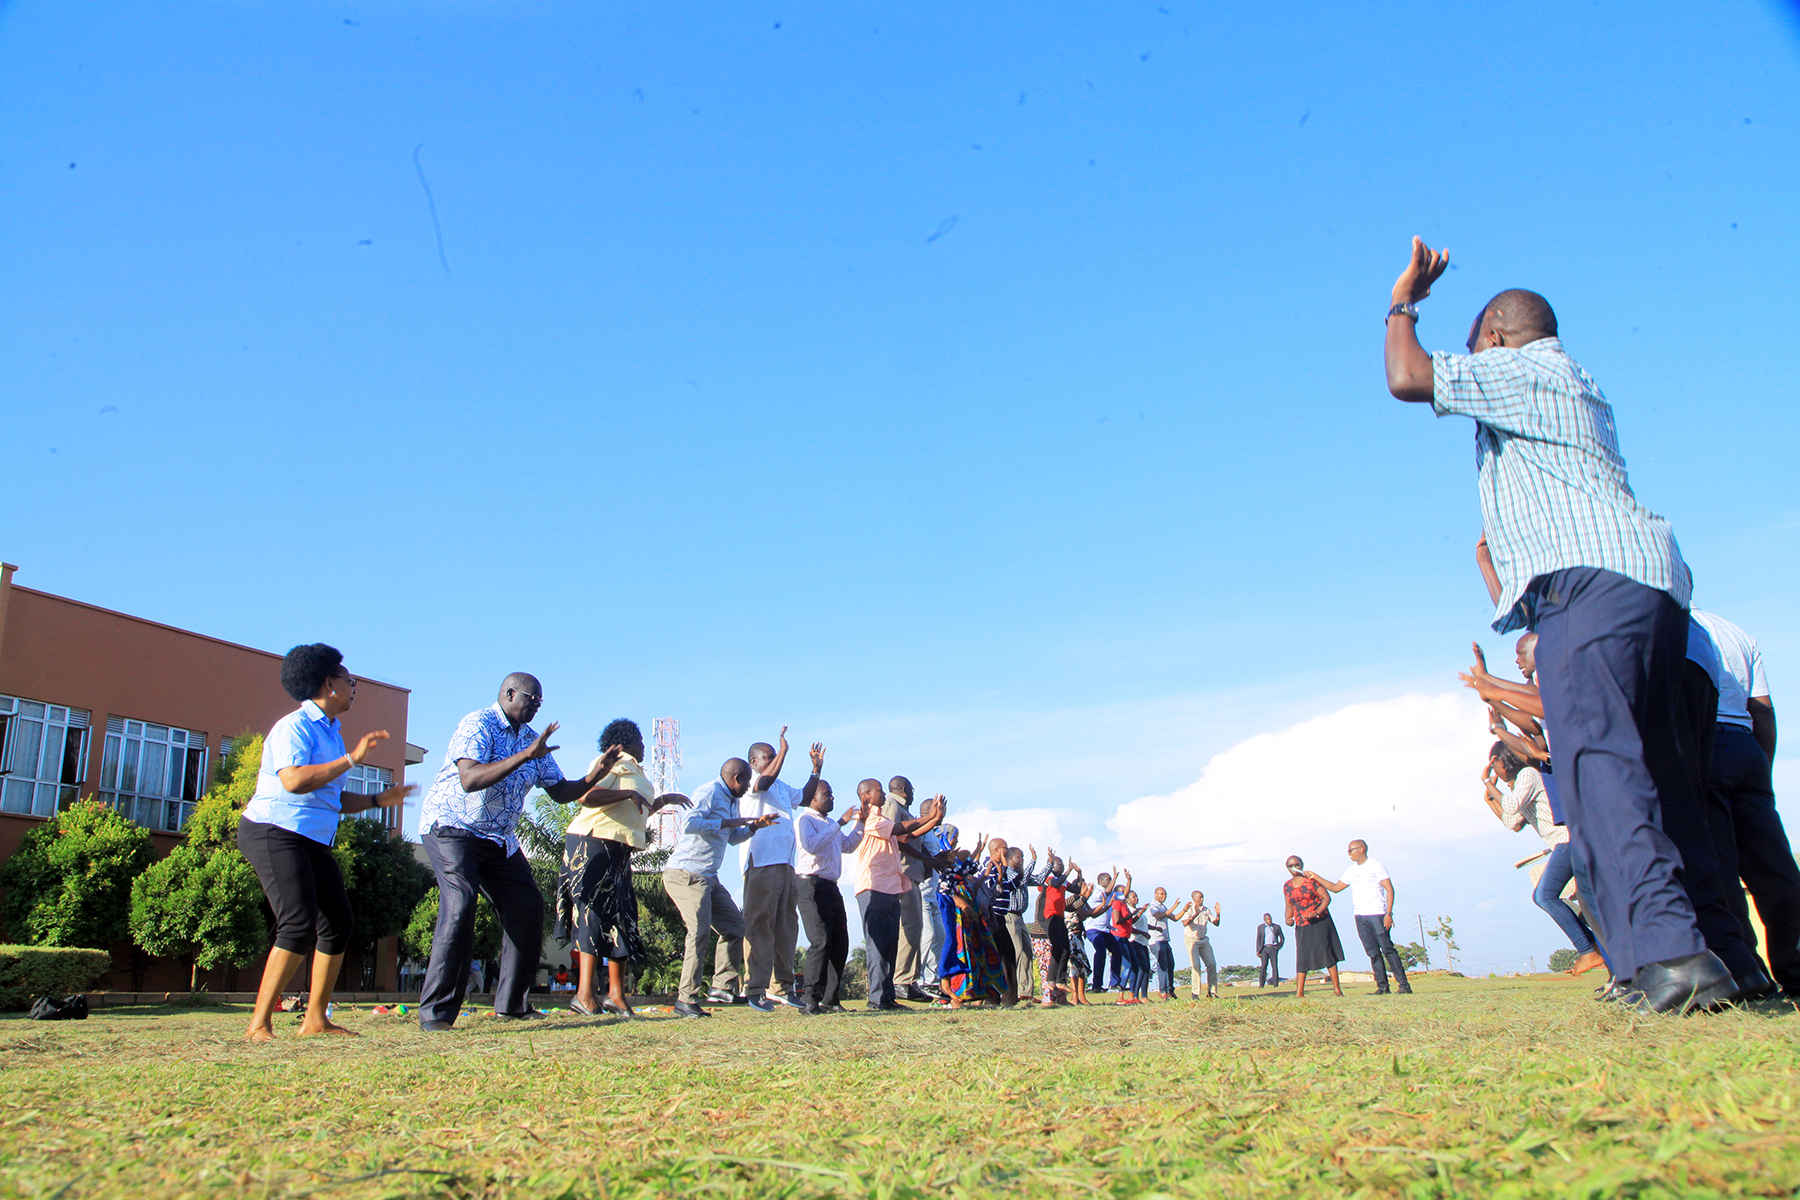 Team building activities during the Senior staff retreat at Civil Servcie College - Jinja